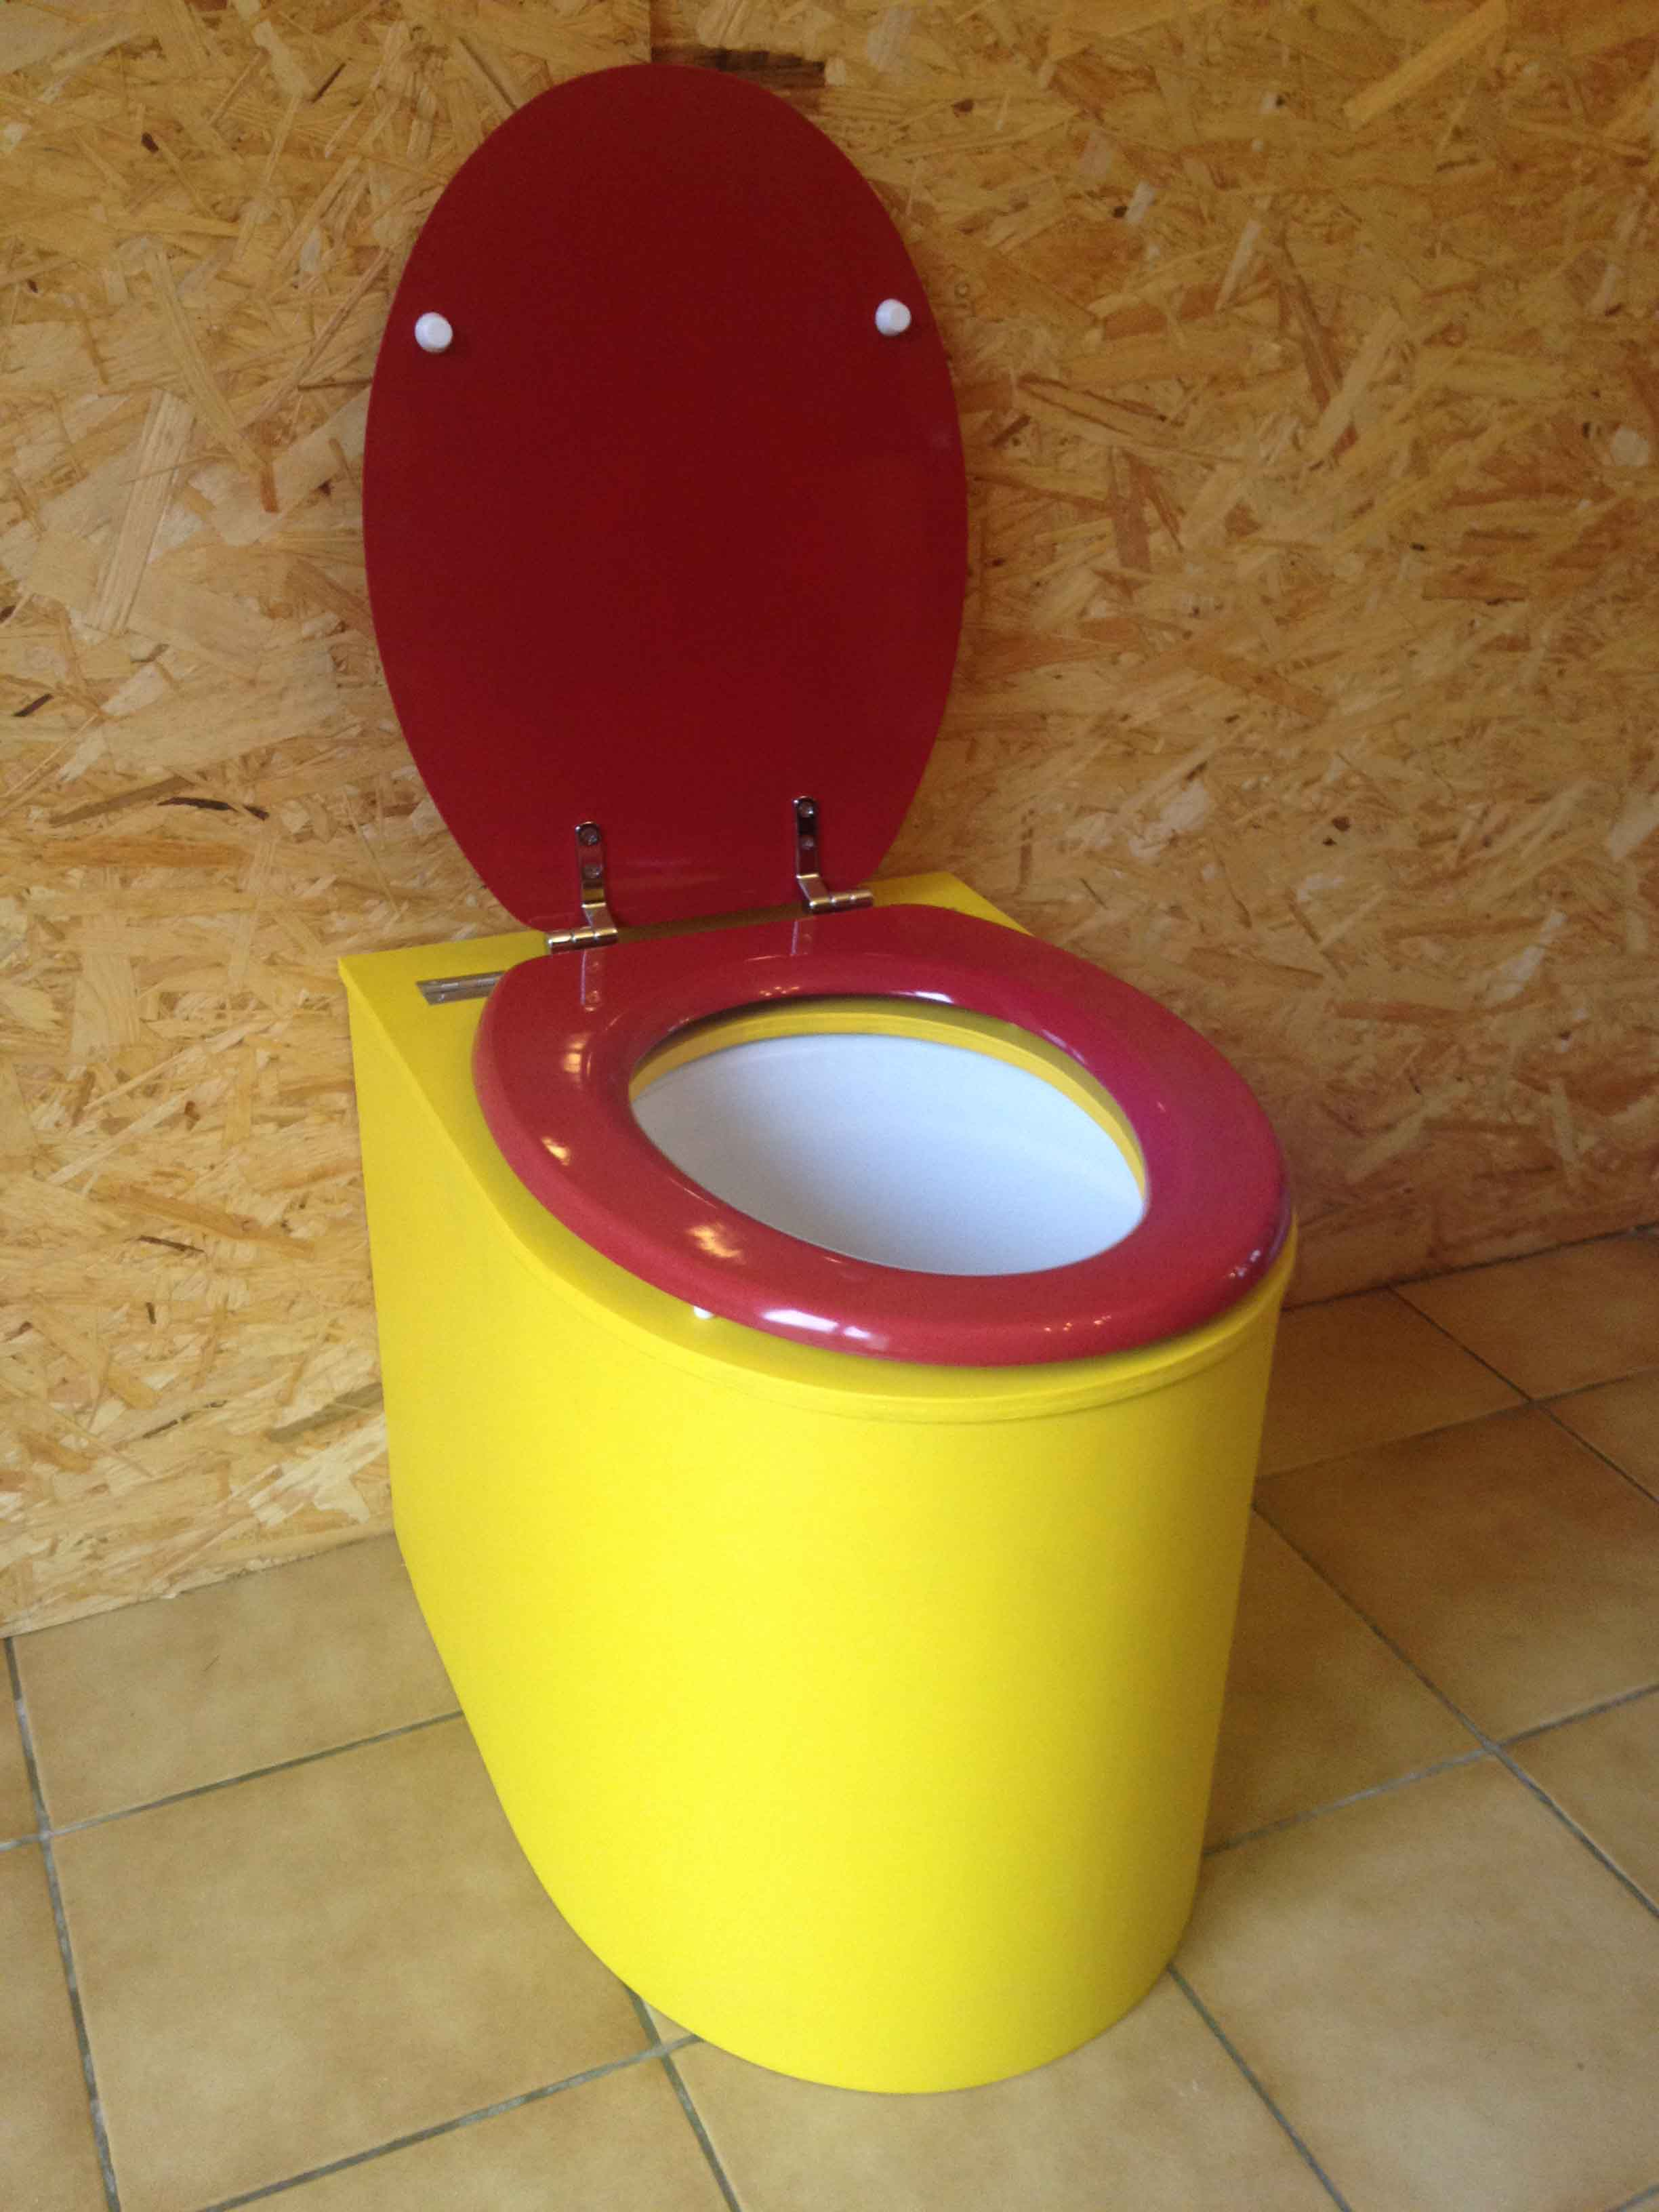 Toilette sèche en appartement jaune